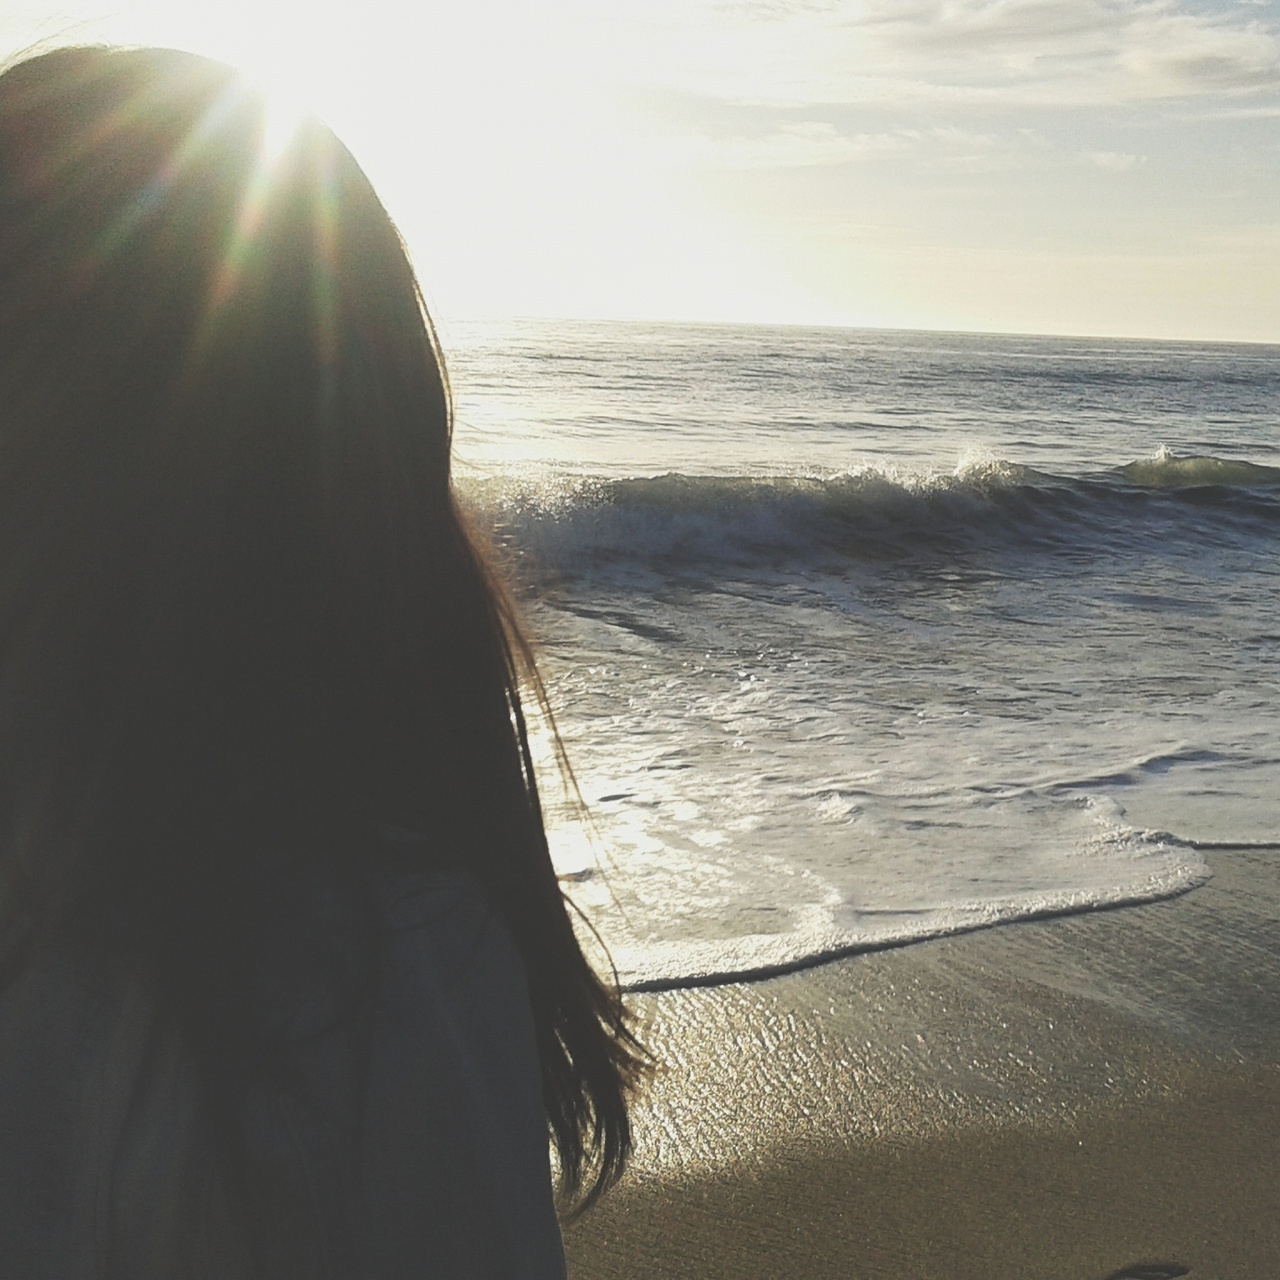 Image About Girl In By The Sea By S3ra M3zz